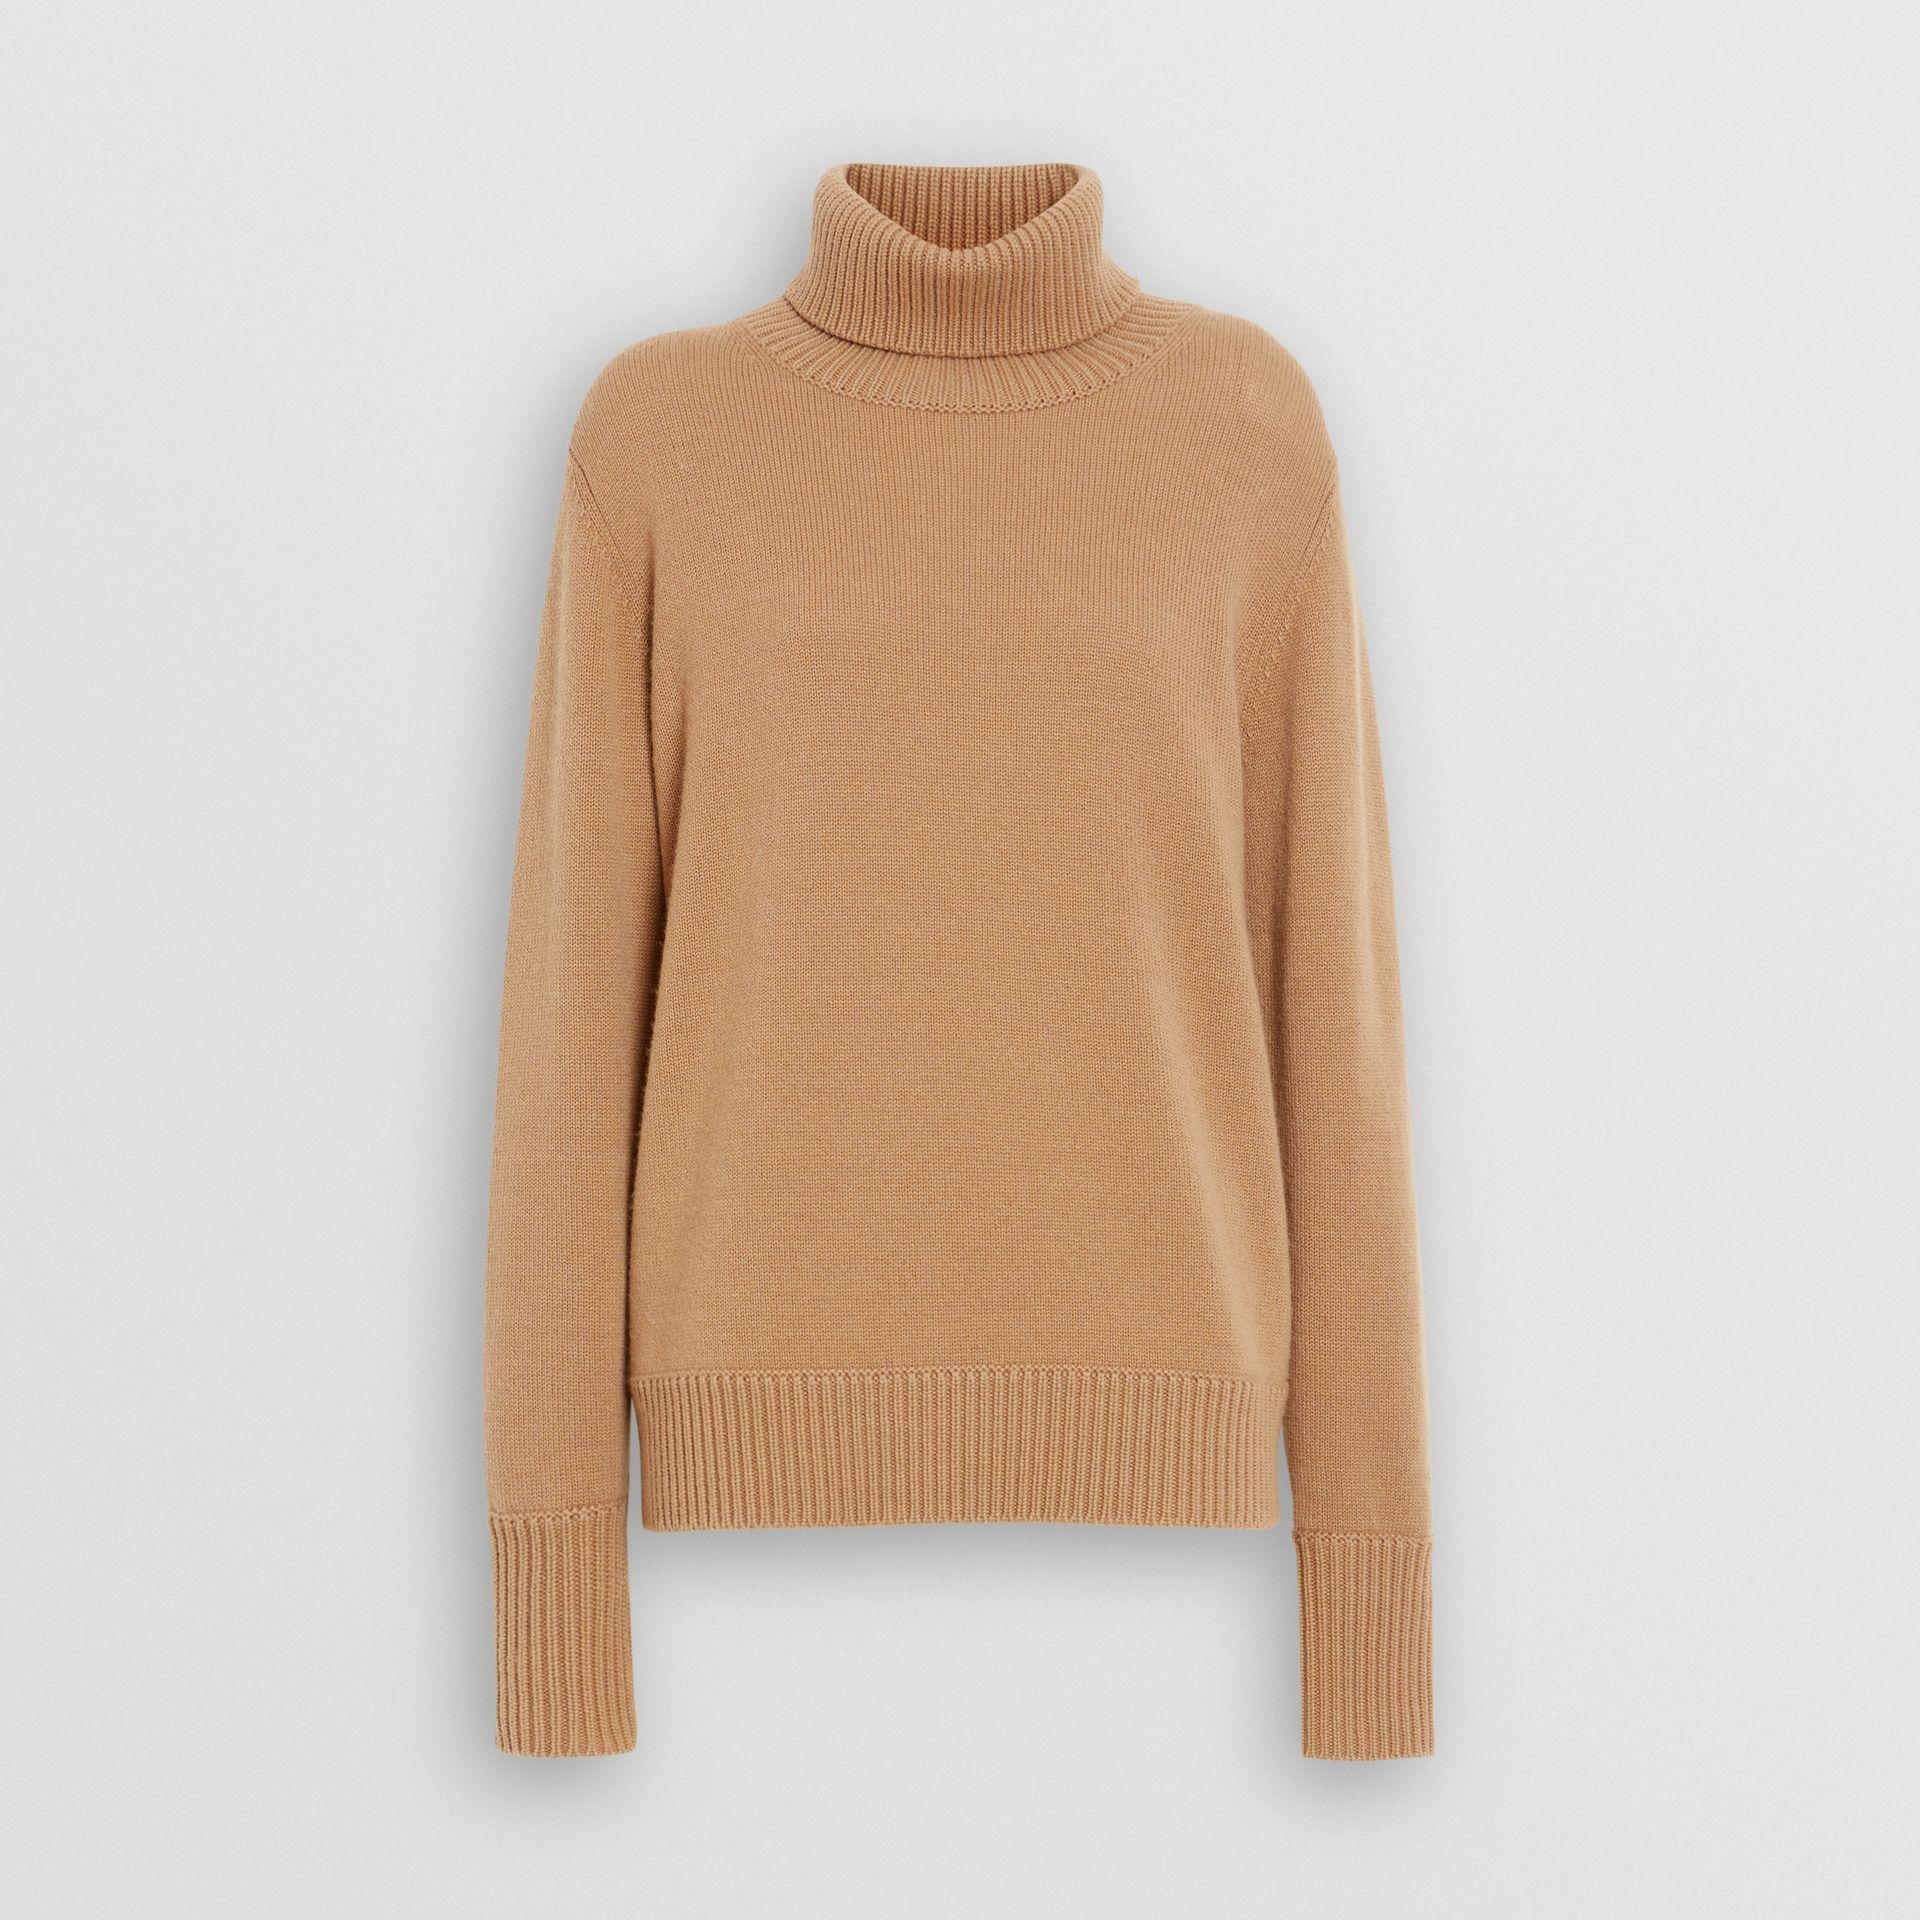 Embroidered Crest Cashmere Roll-neck Sweater in Camel - Women | Burberry - gallery image 3